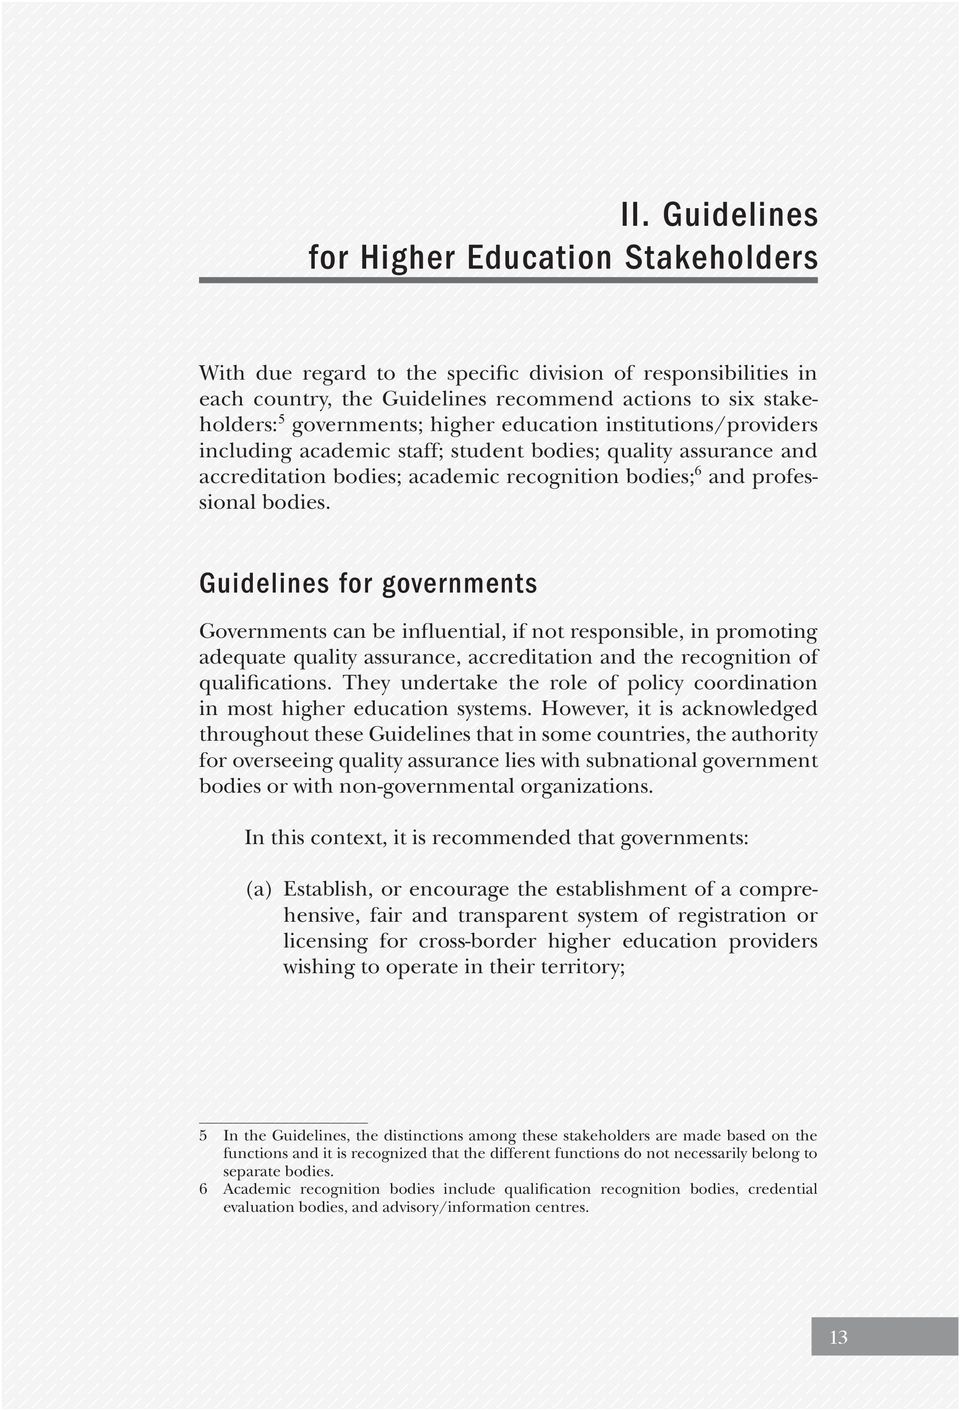 Guidelines for governments Governments can be influential, if not responsible, in promoting adequate quality assurance, accreditation and the recognition of qualifications.